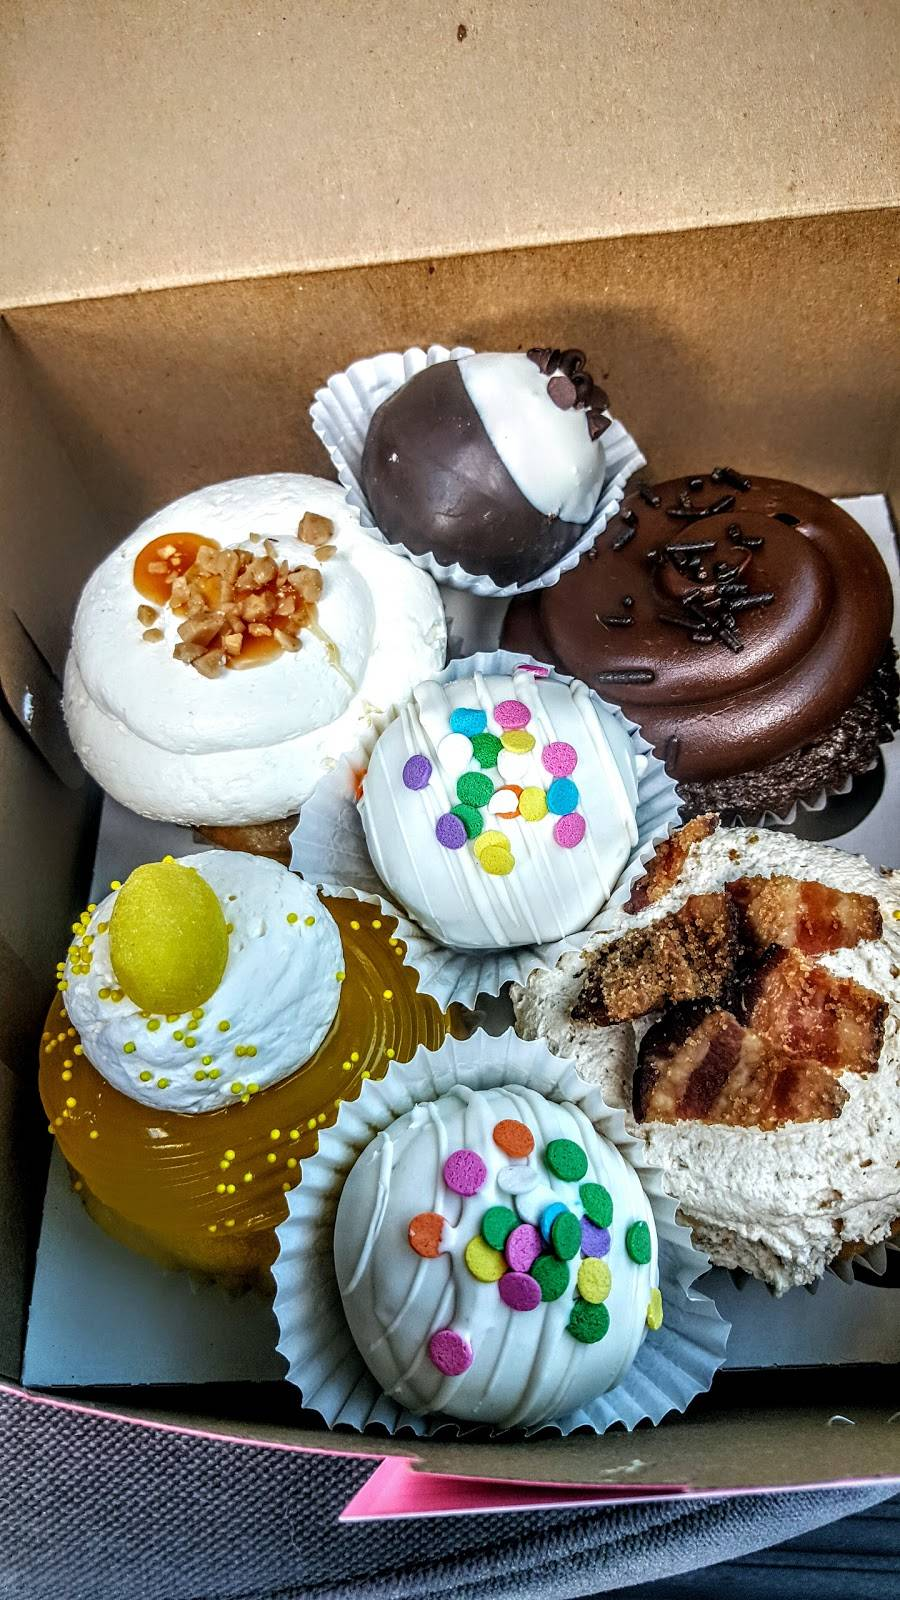 Pattys Cakes and Desserts   cafe   825 W Commonwealth Ave, Fullerton, CA 92832, USA   7145258350 OR +1 714-525-8350